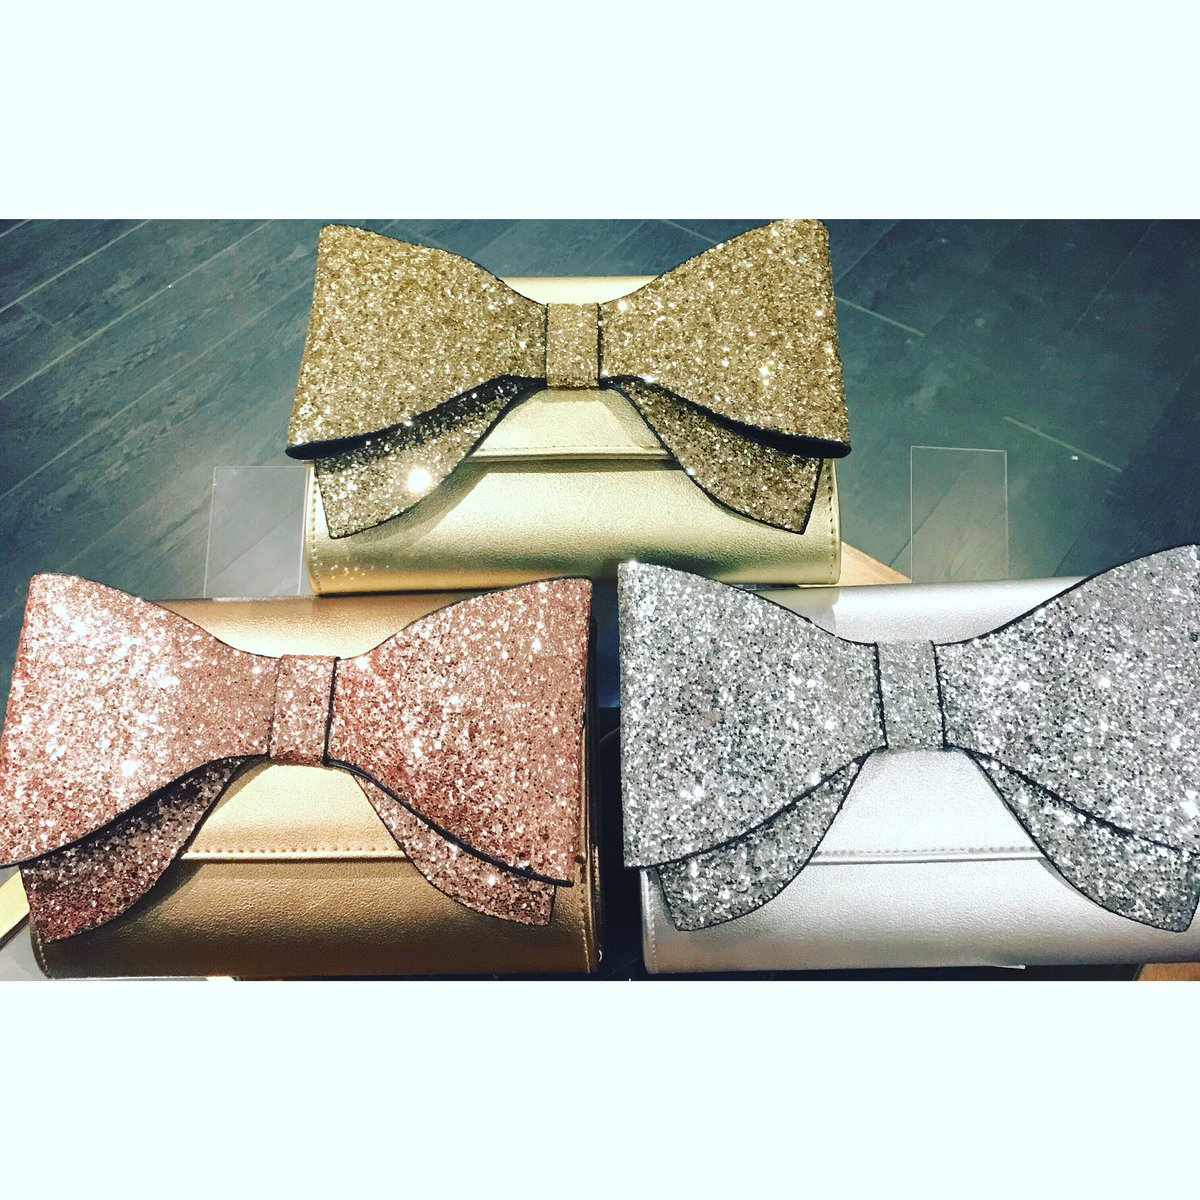 4a88487883a560 ... #clutchbag #eveningbag #loveofbags #shoulderbag #rosegold #silver #gold  #bronze #silverbag #goldbag #bronzebag #metallicspic.twitter.com/fVVY2TxfBn